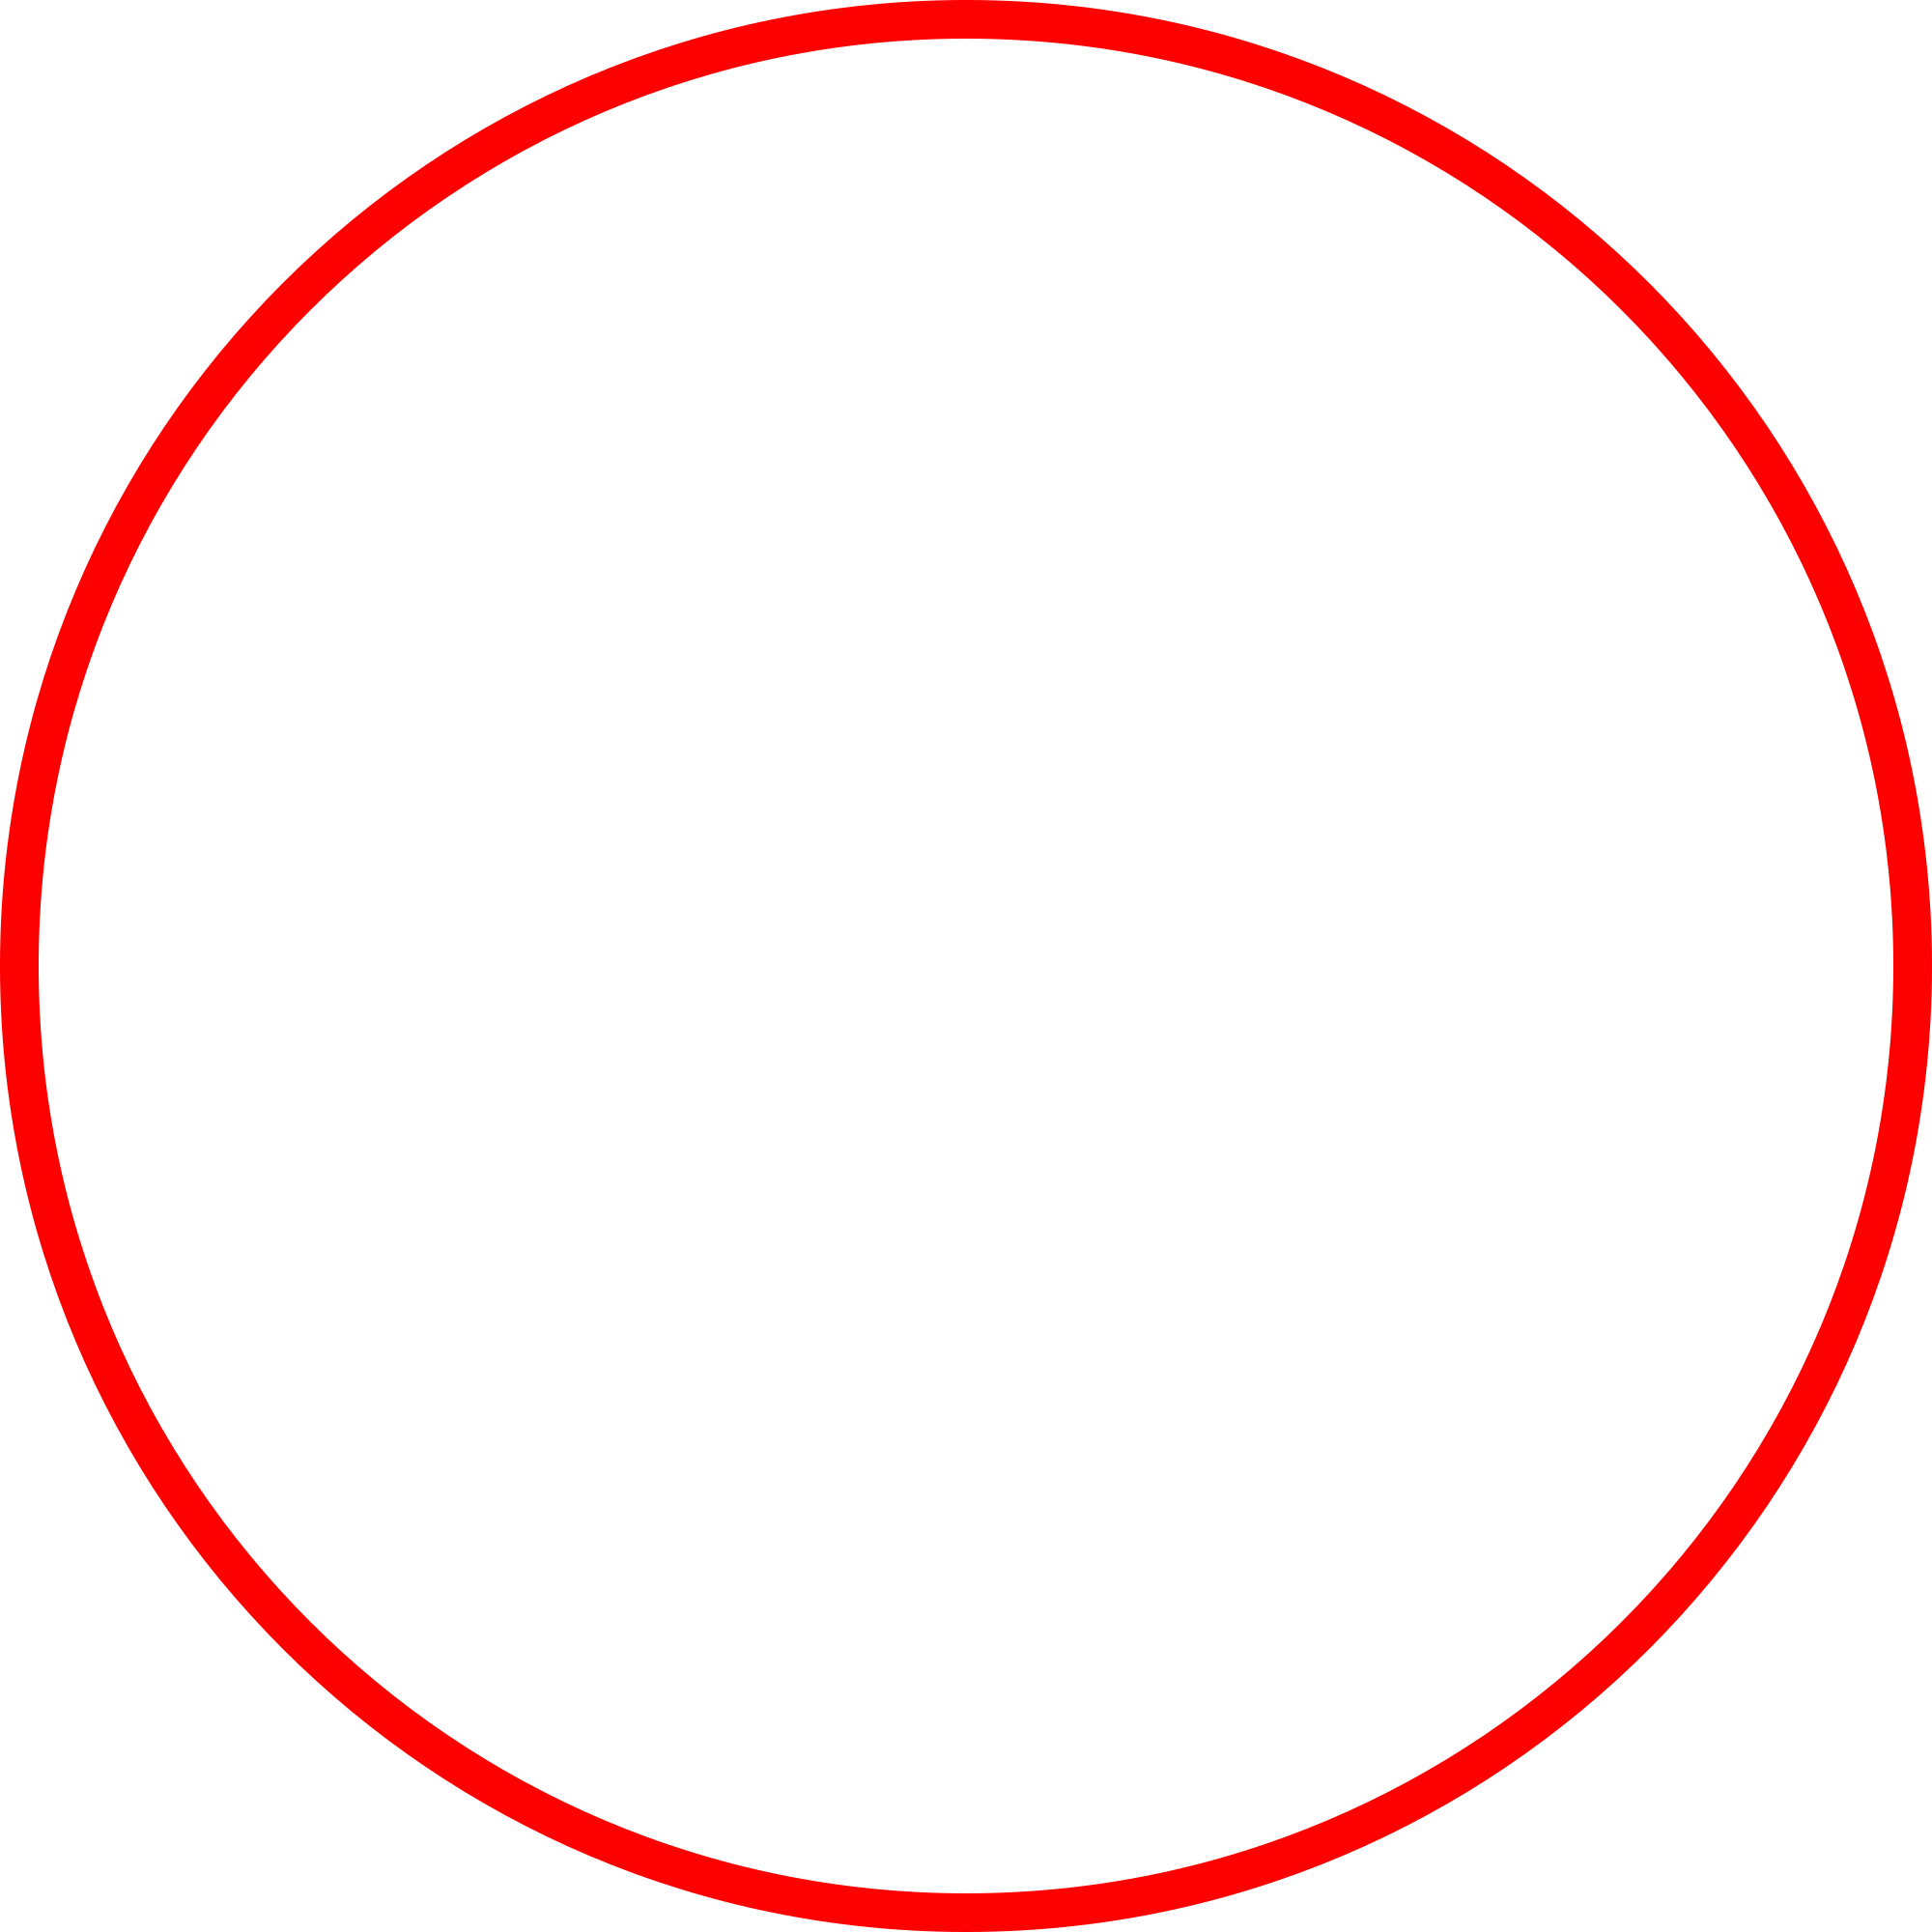 Red Circle Line Png